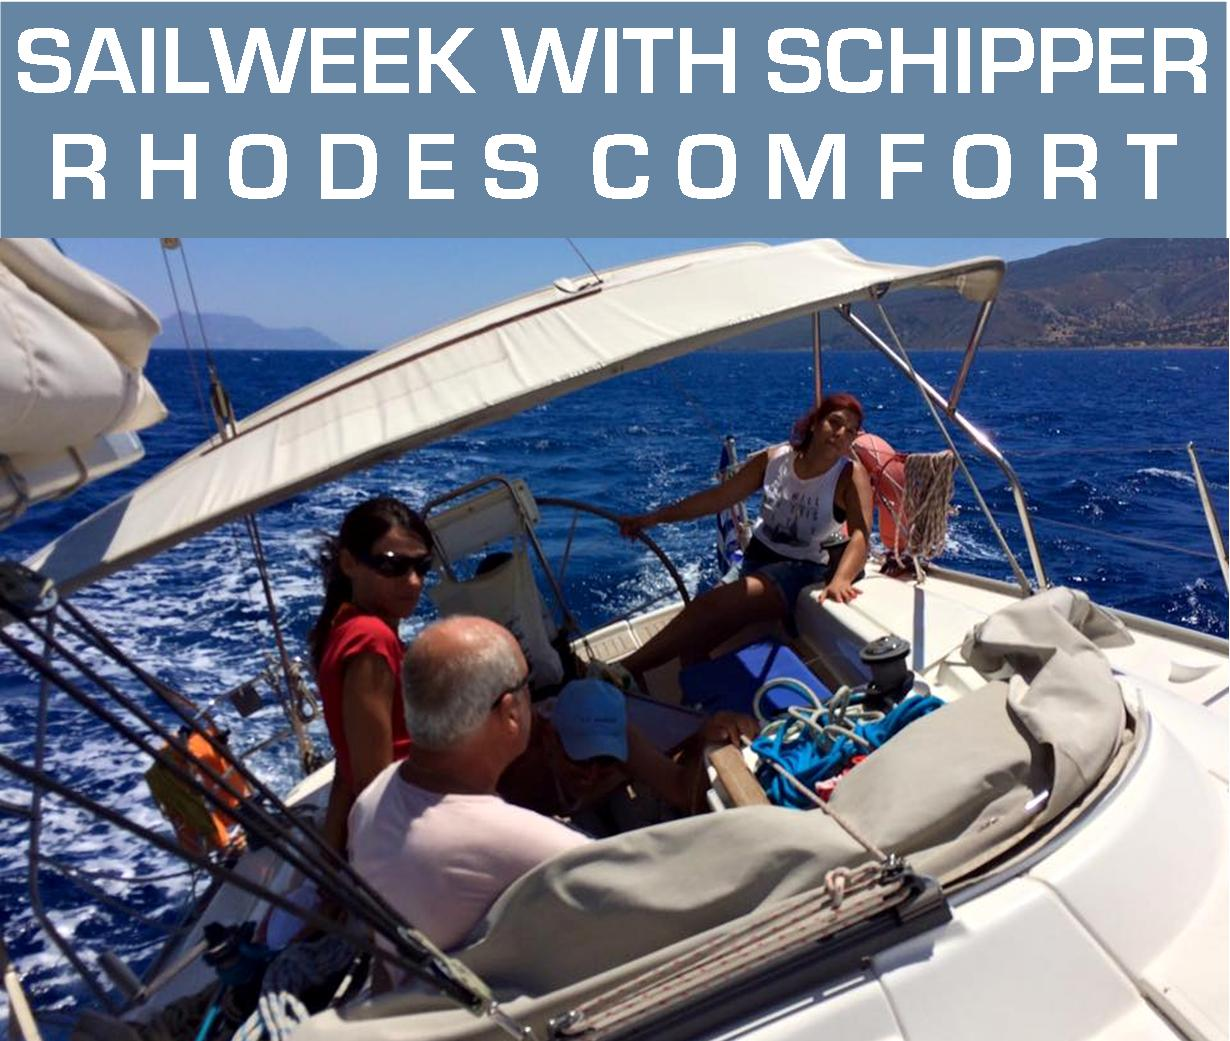 One day sailing with your friends on Rhodes | Sail in Greece | sail-in-greece.net